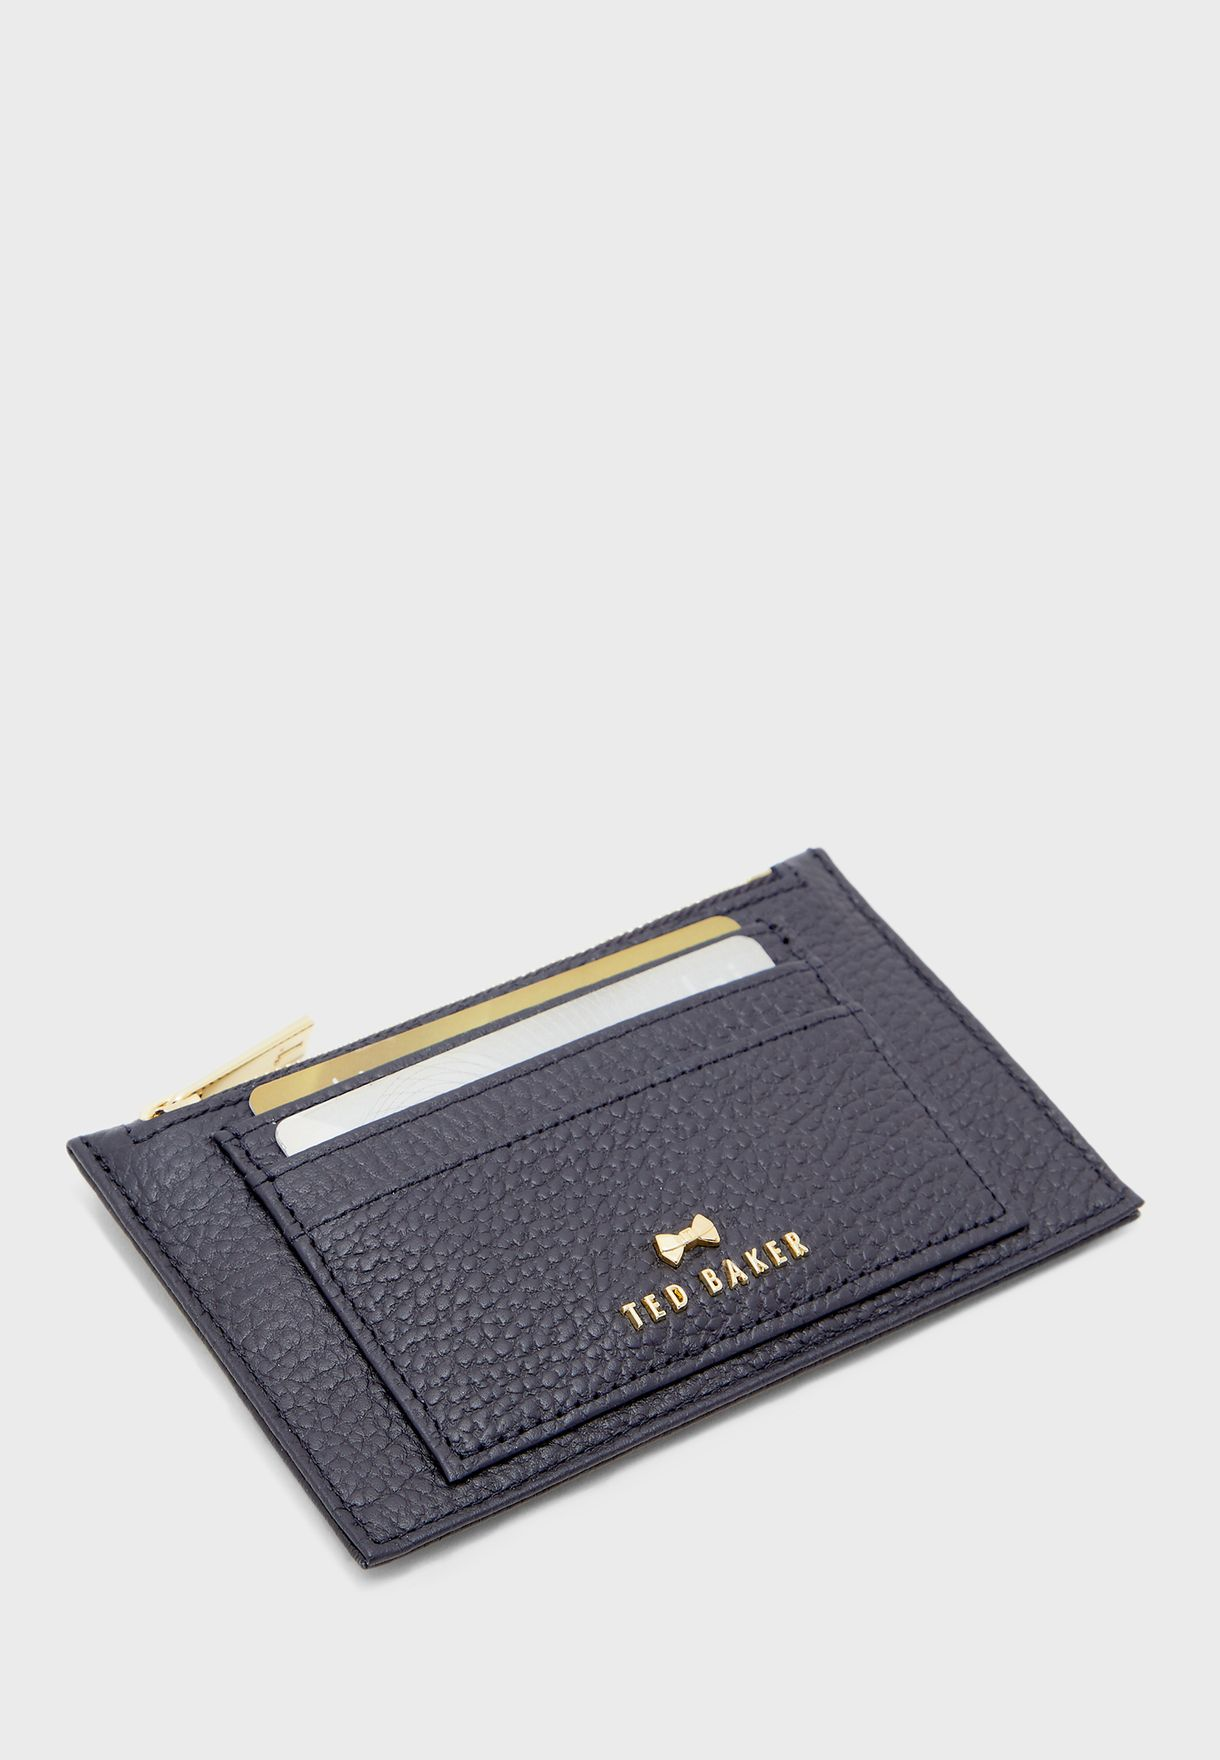 Two Sided Zipped Card Holder